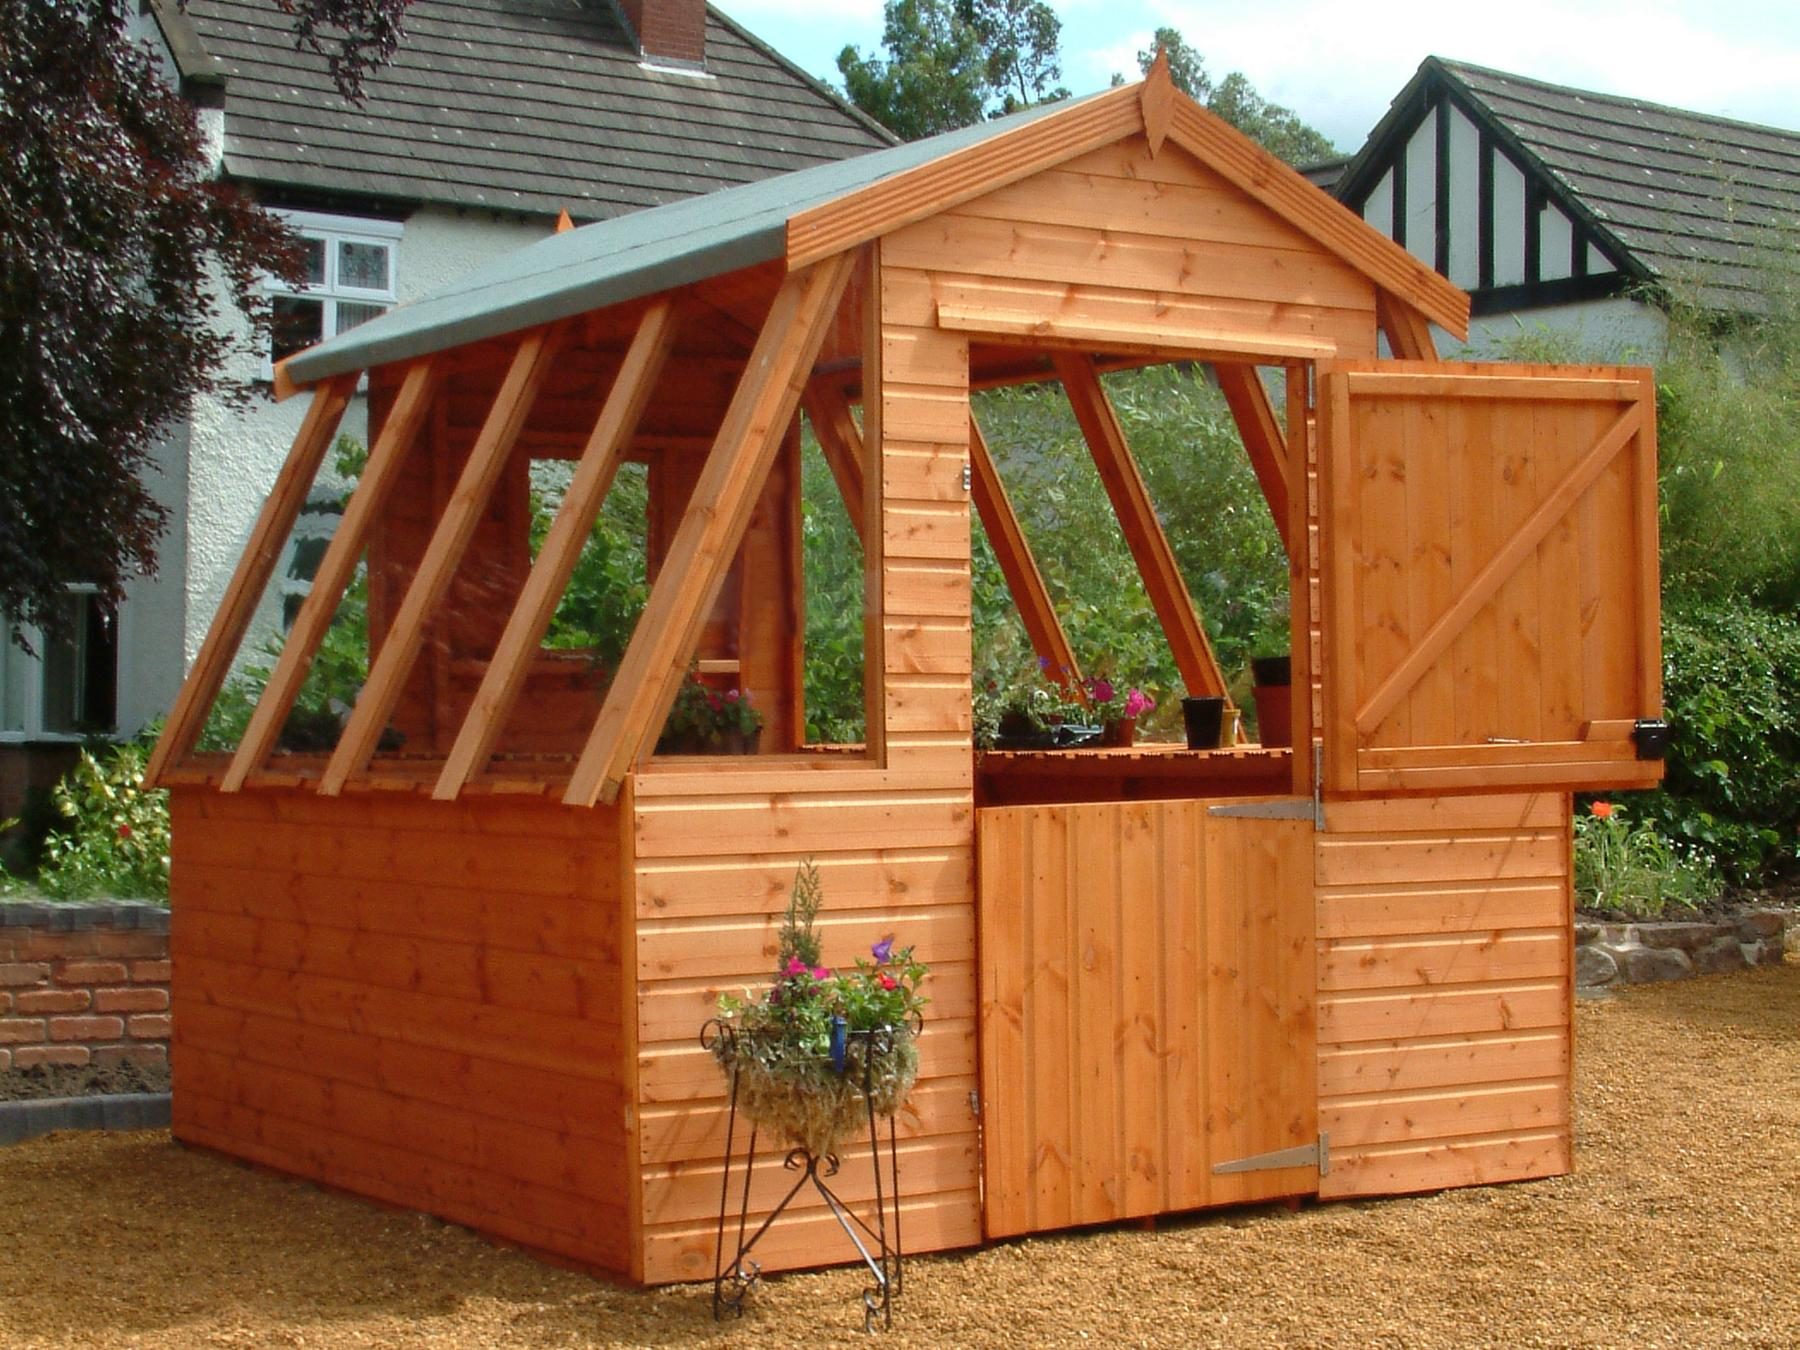 Pictures Of Potting Sheds Interior Joy Studio Design